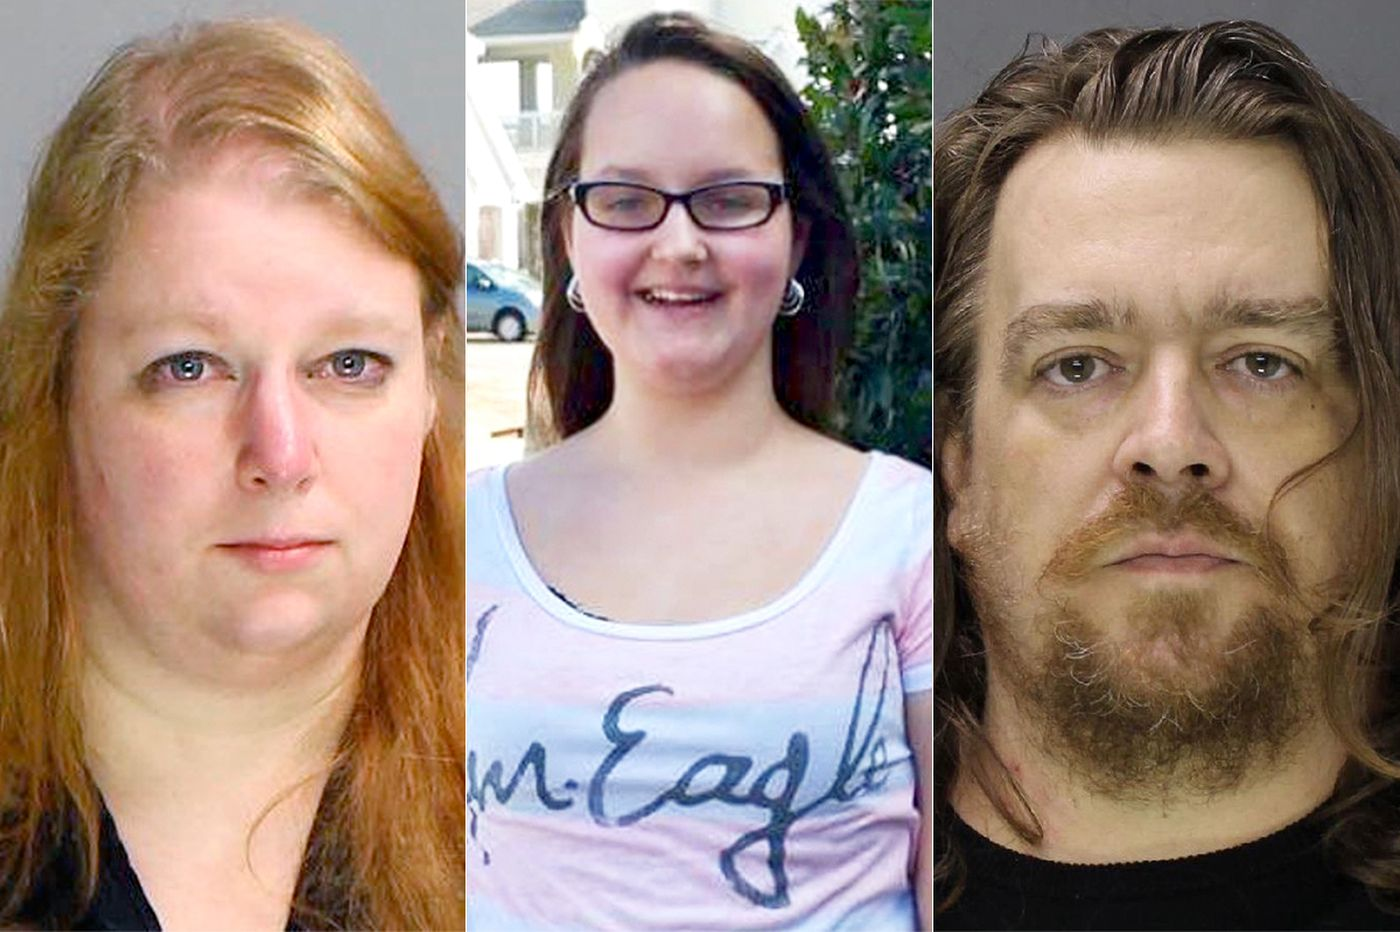 Man gets death sentence for rape, murder of 14-year-old Pennsylvania girl